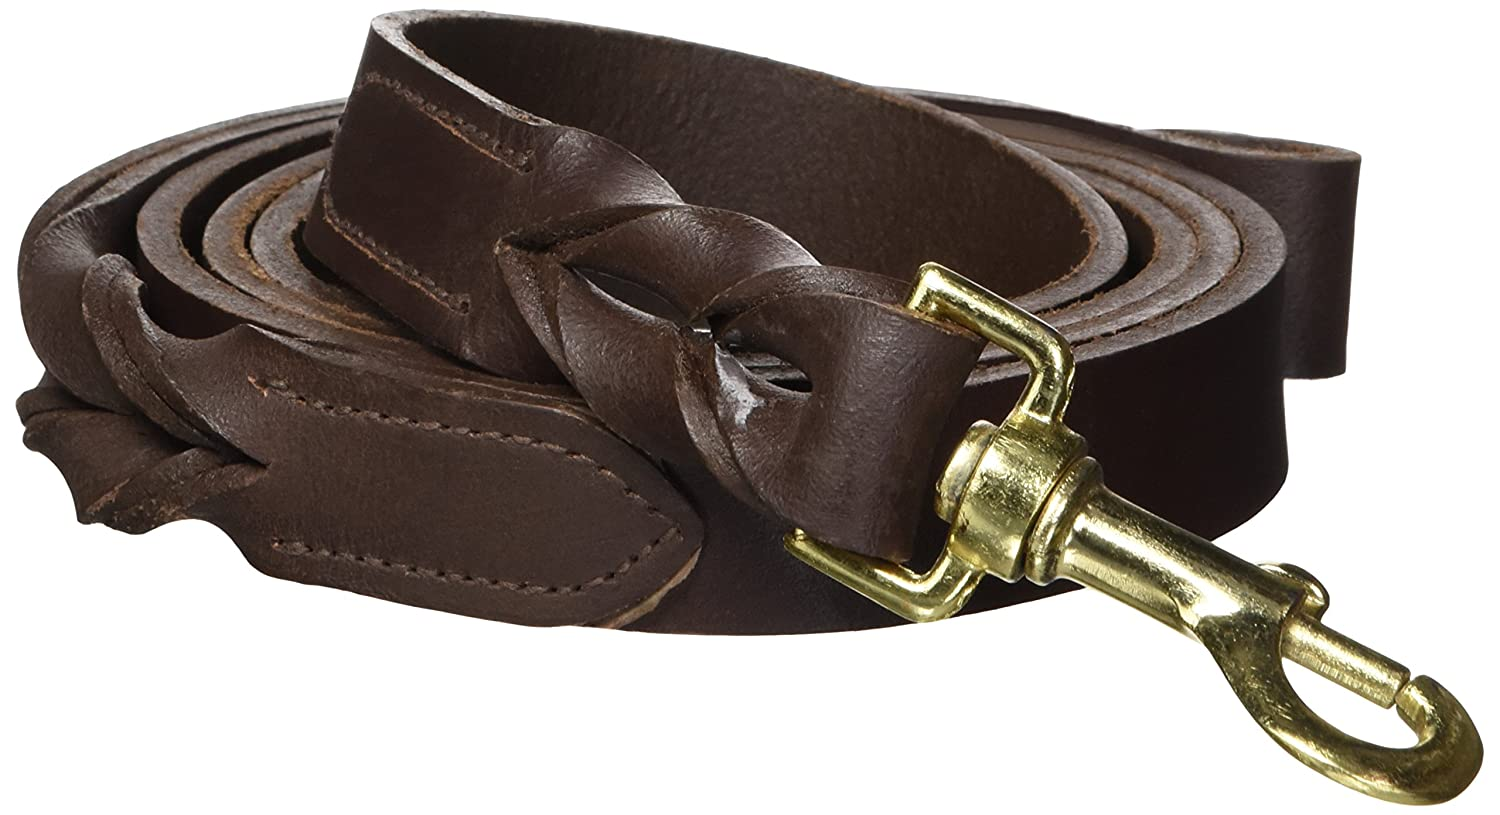 1-Inch Casual Canine Flat Leather Braided Ends Dog Lead, 1-Inch, Brown